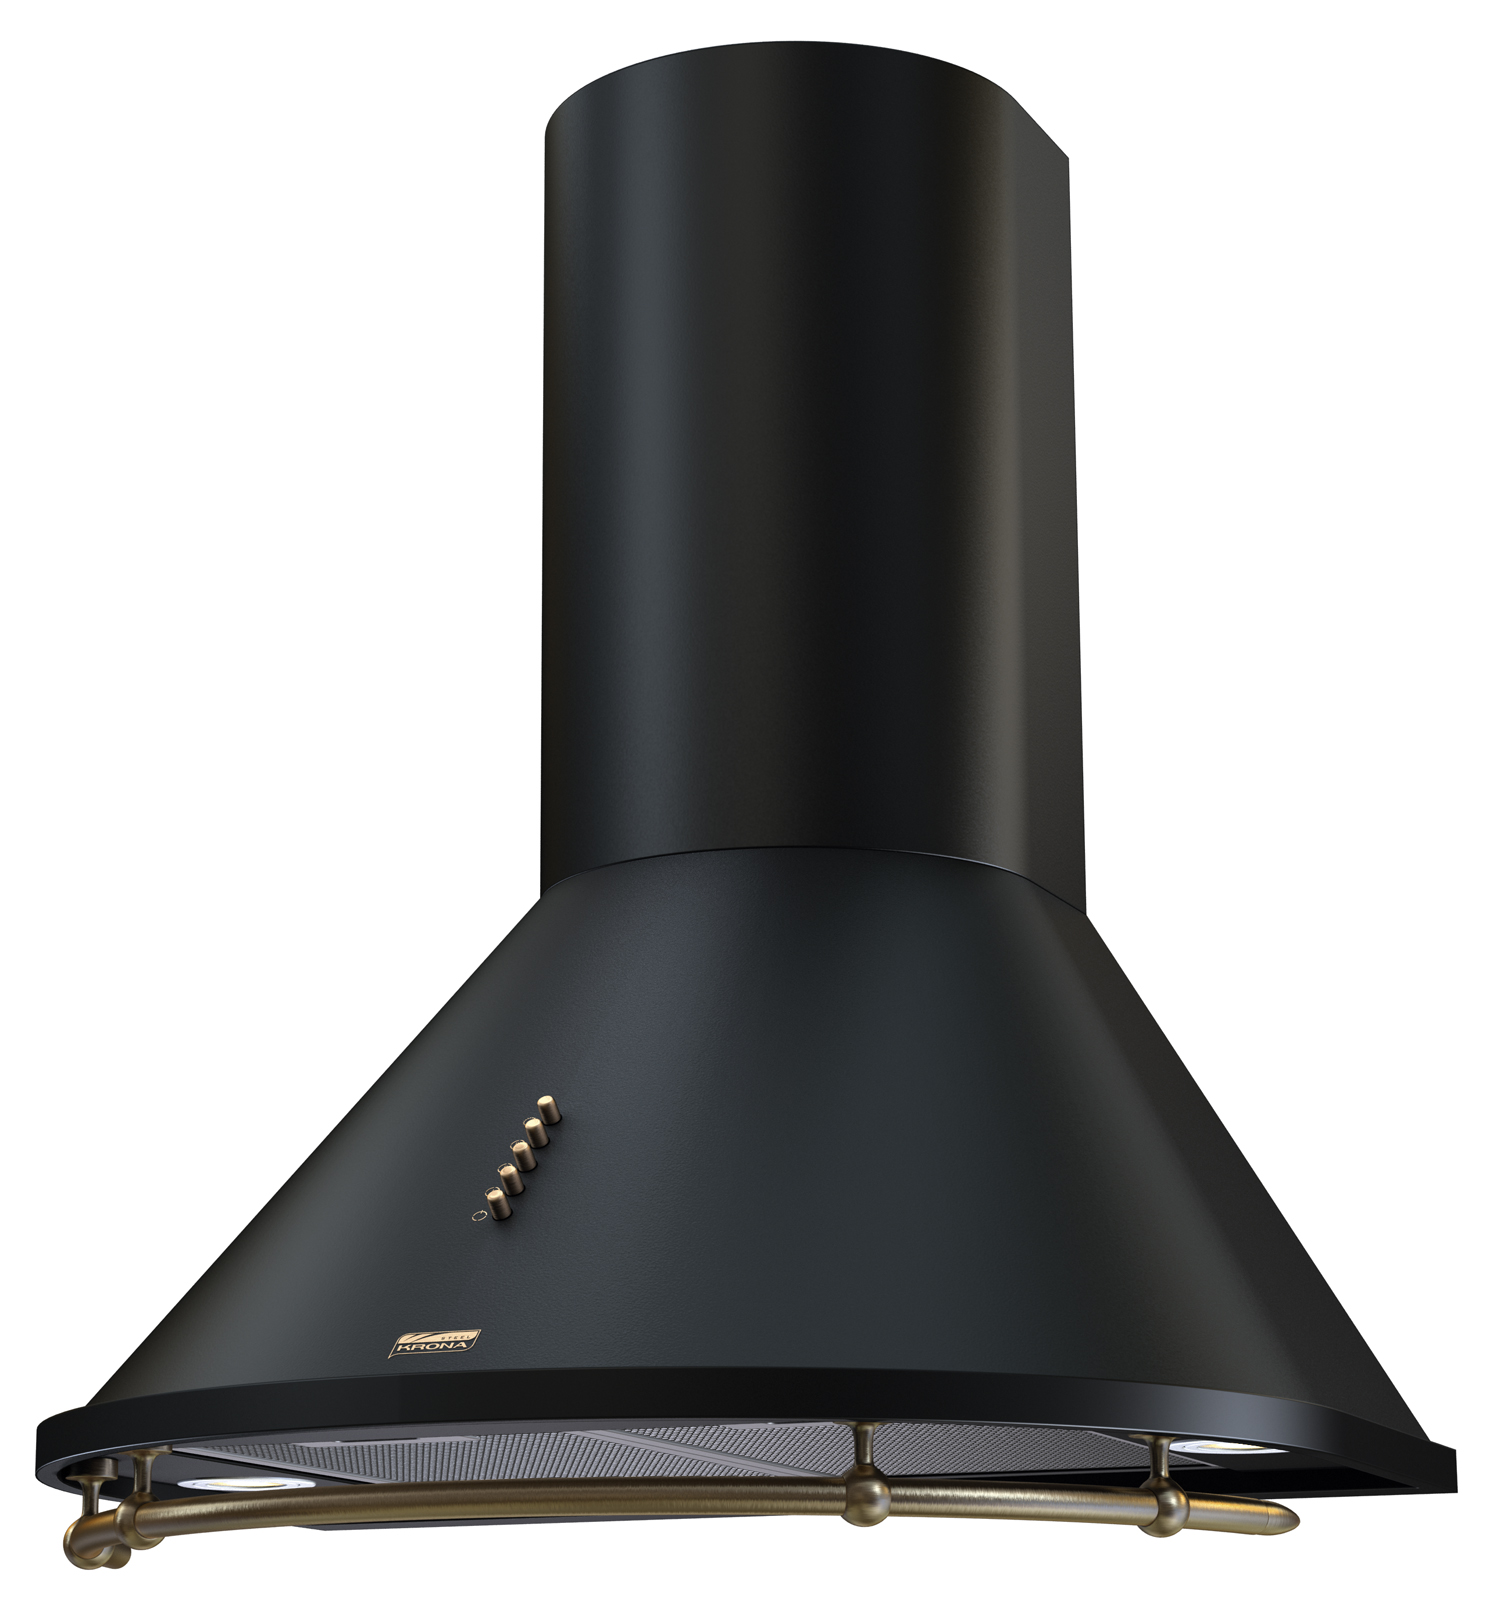 NIKOL 600 black/bronze push button, стоимость 14 091 руб.